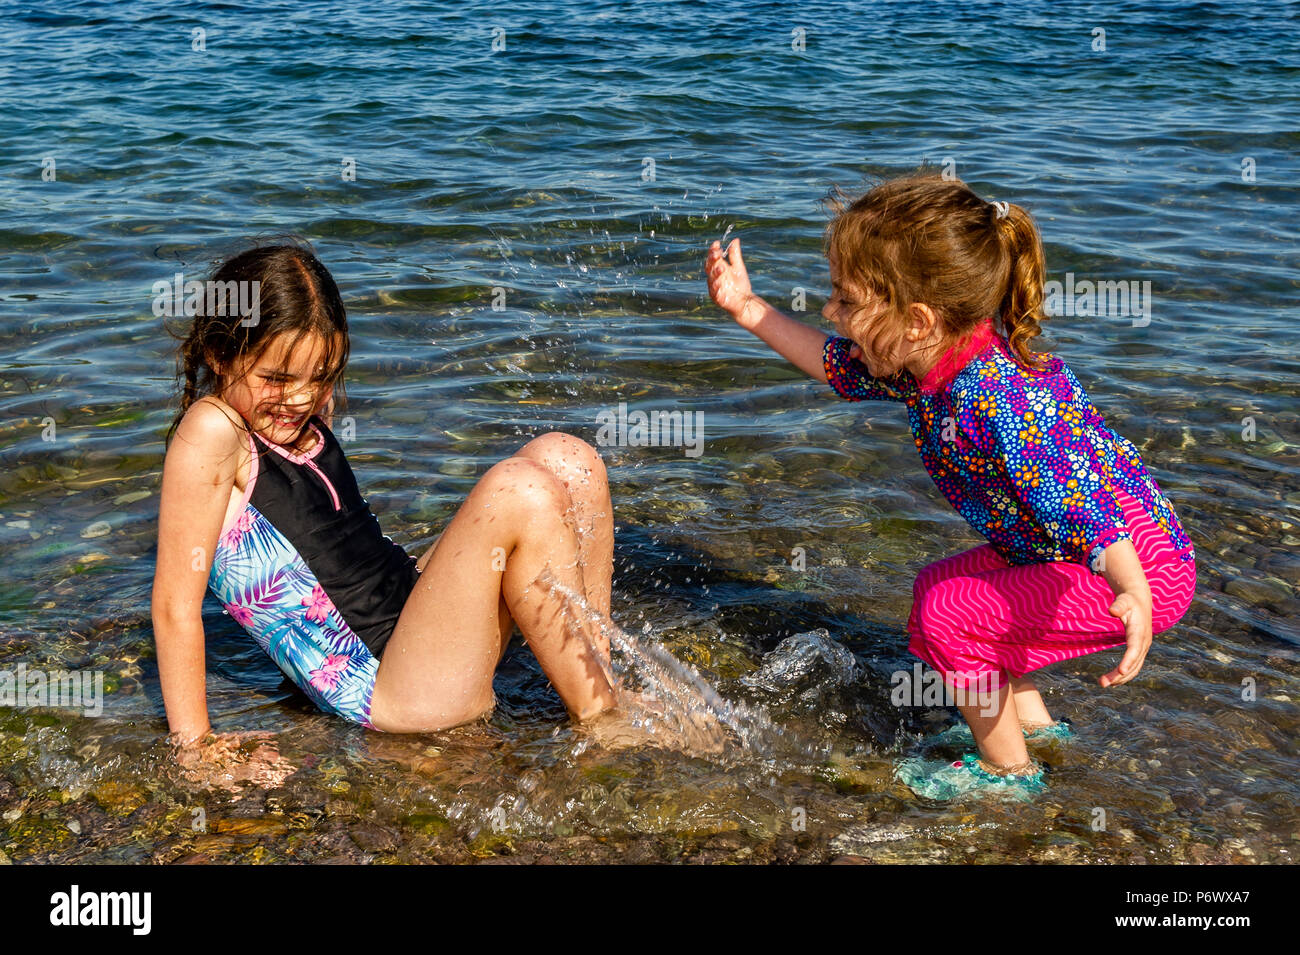 Schull, West Cork, Ireland. 3rd July, 2018. Laura and Sophia Maguire from Dublin cool off in the sea on another blisteringly hot day. The heatwave shows no sign of ending with temperatures forecast to be in the high 20°'s Celsius for at least a week. Credit: Andy Gibson/Alamy Live News. - Stock Image